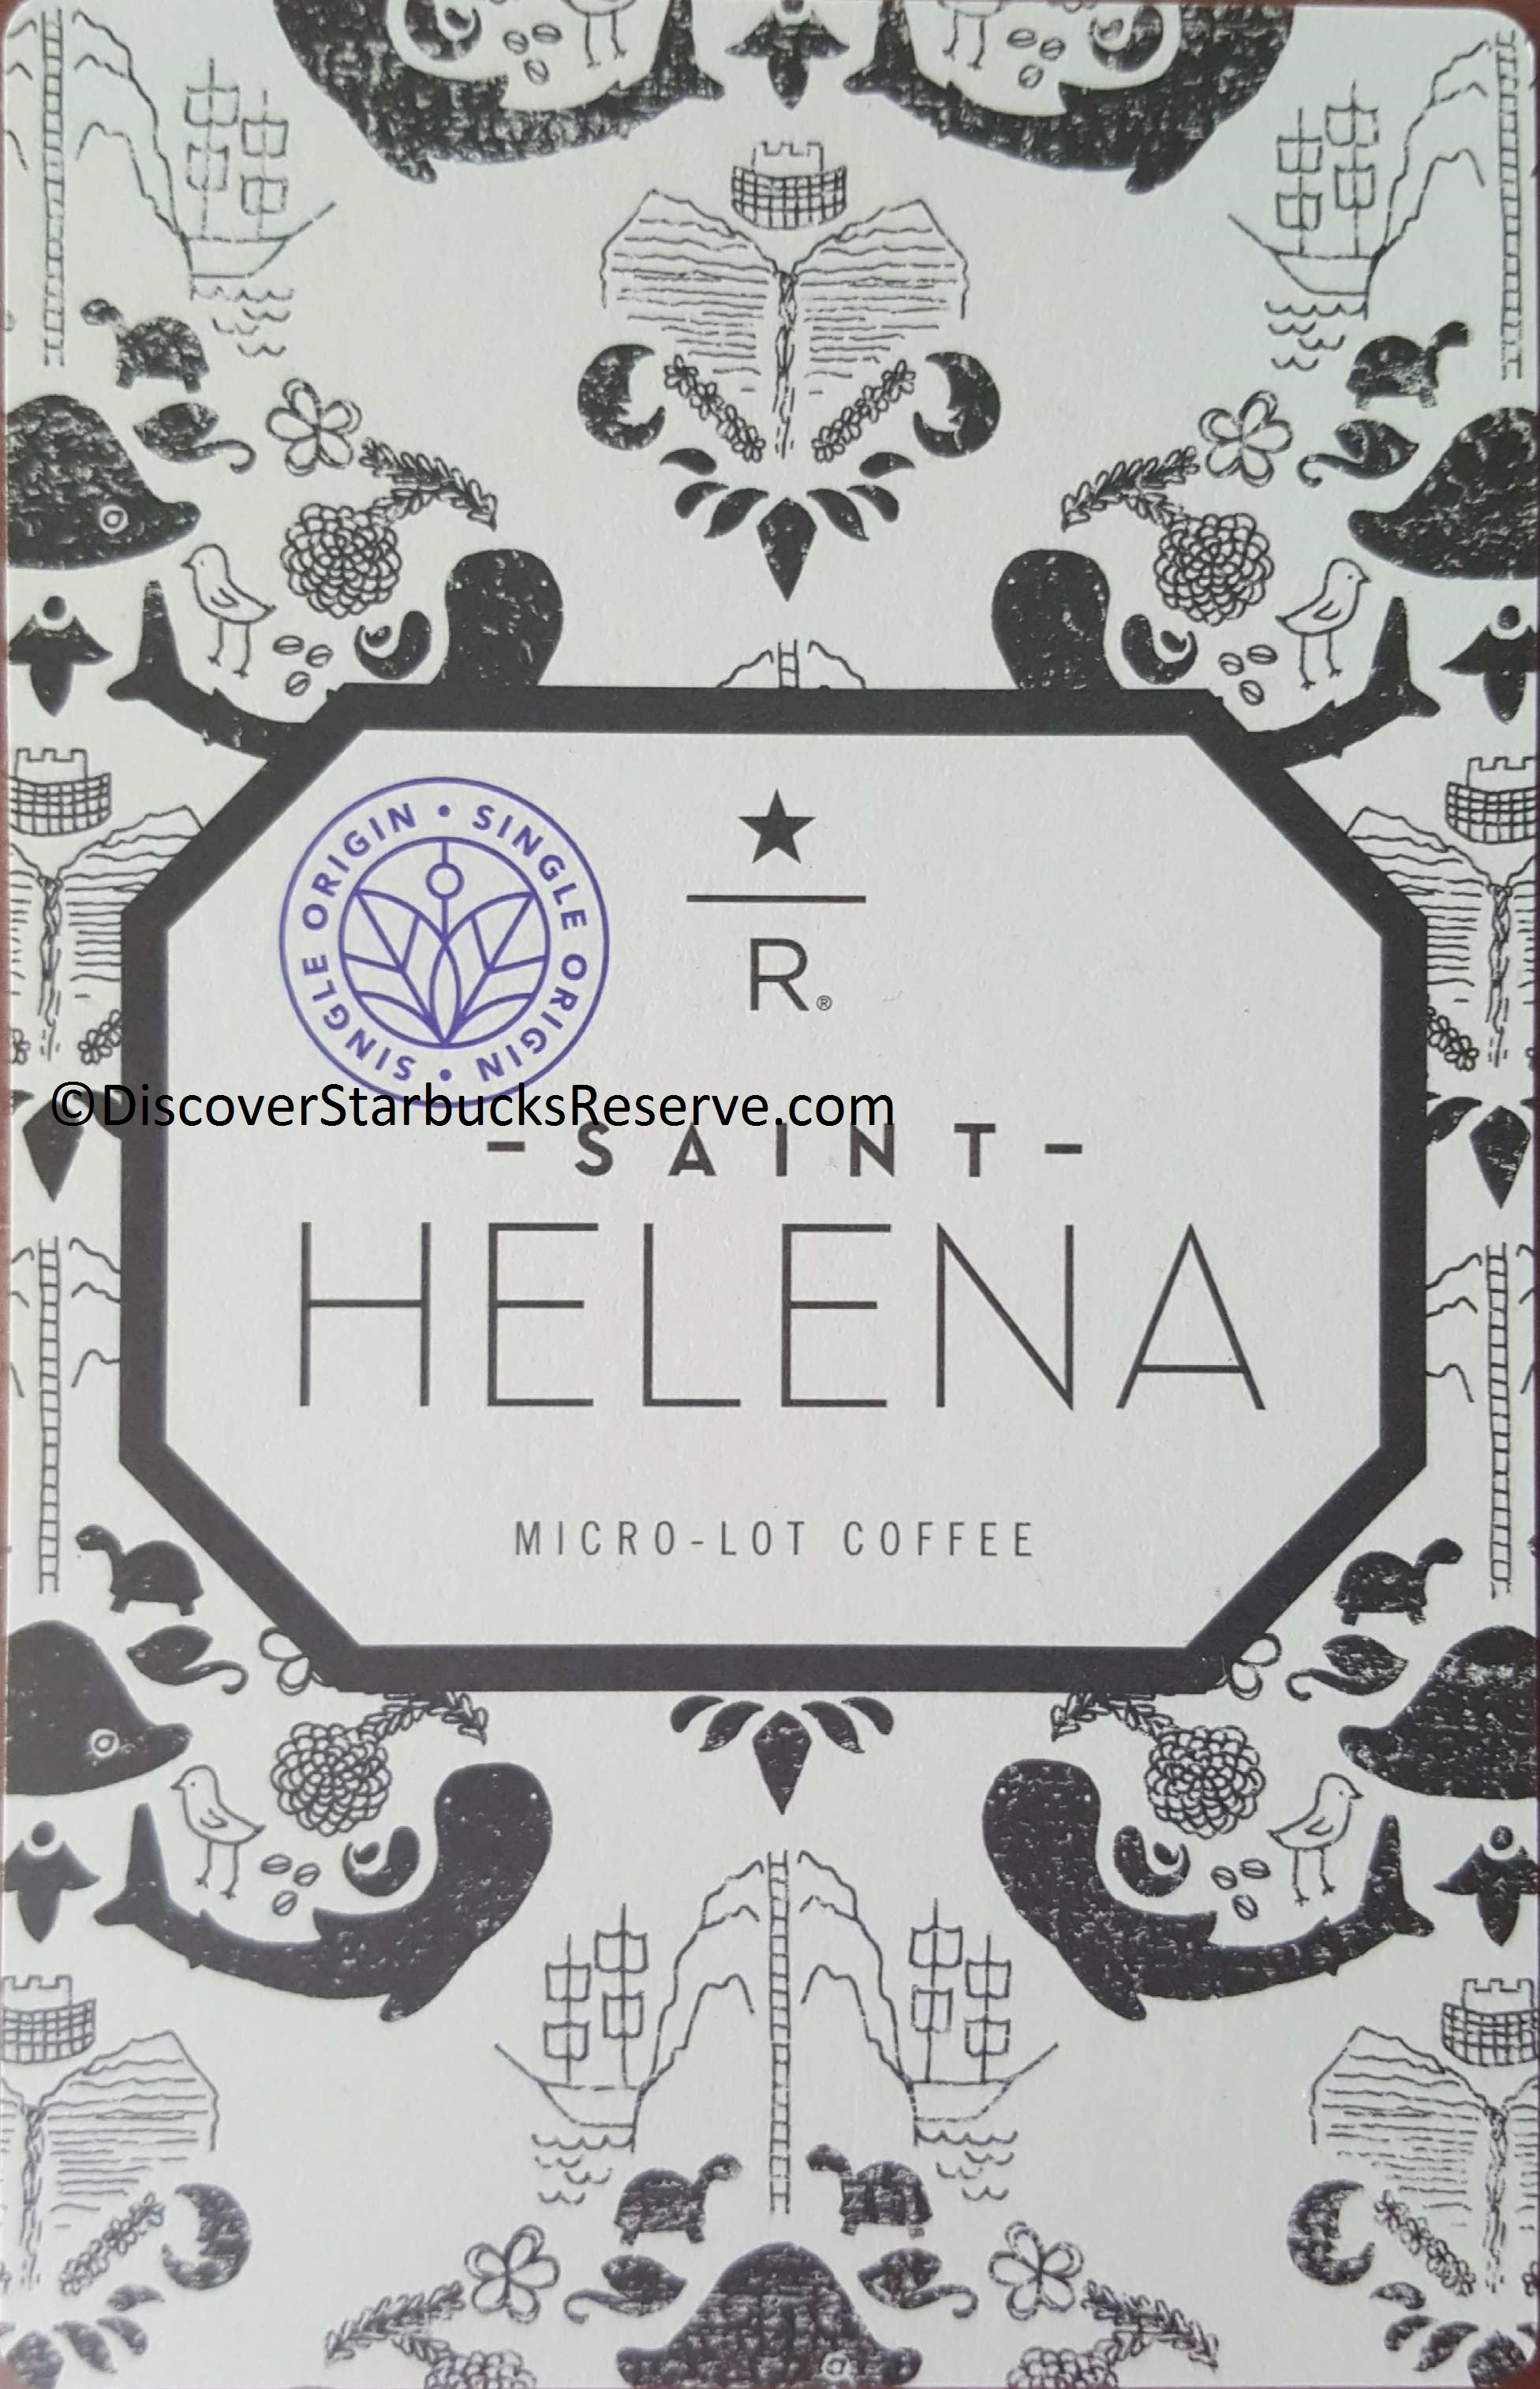 2 - 1 - New Doc 164_1 front of st helena card.jpg